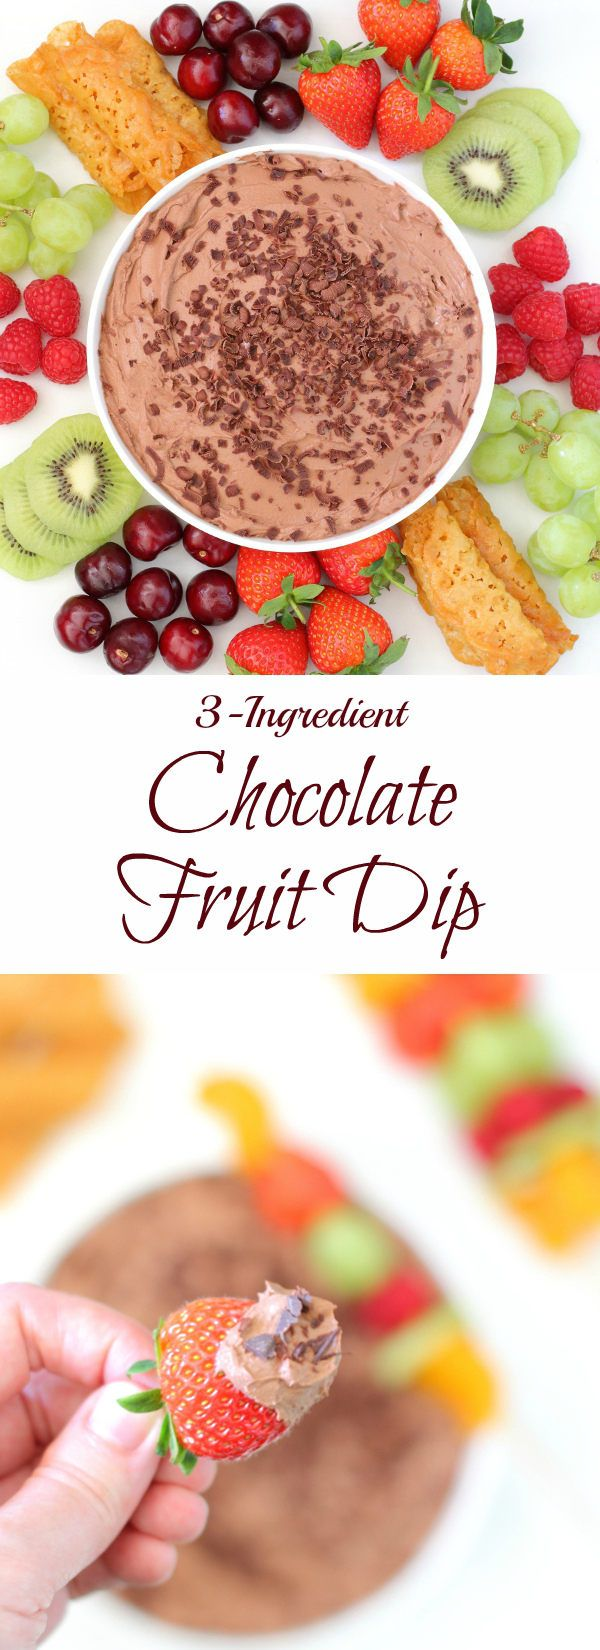 the fruit of grisaia healthy fruit dip recipe